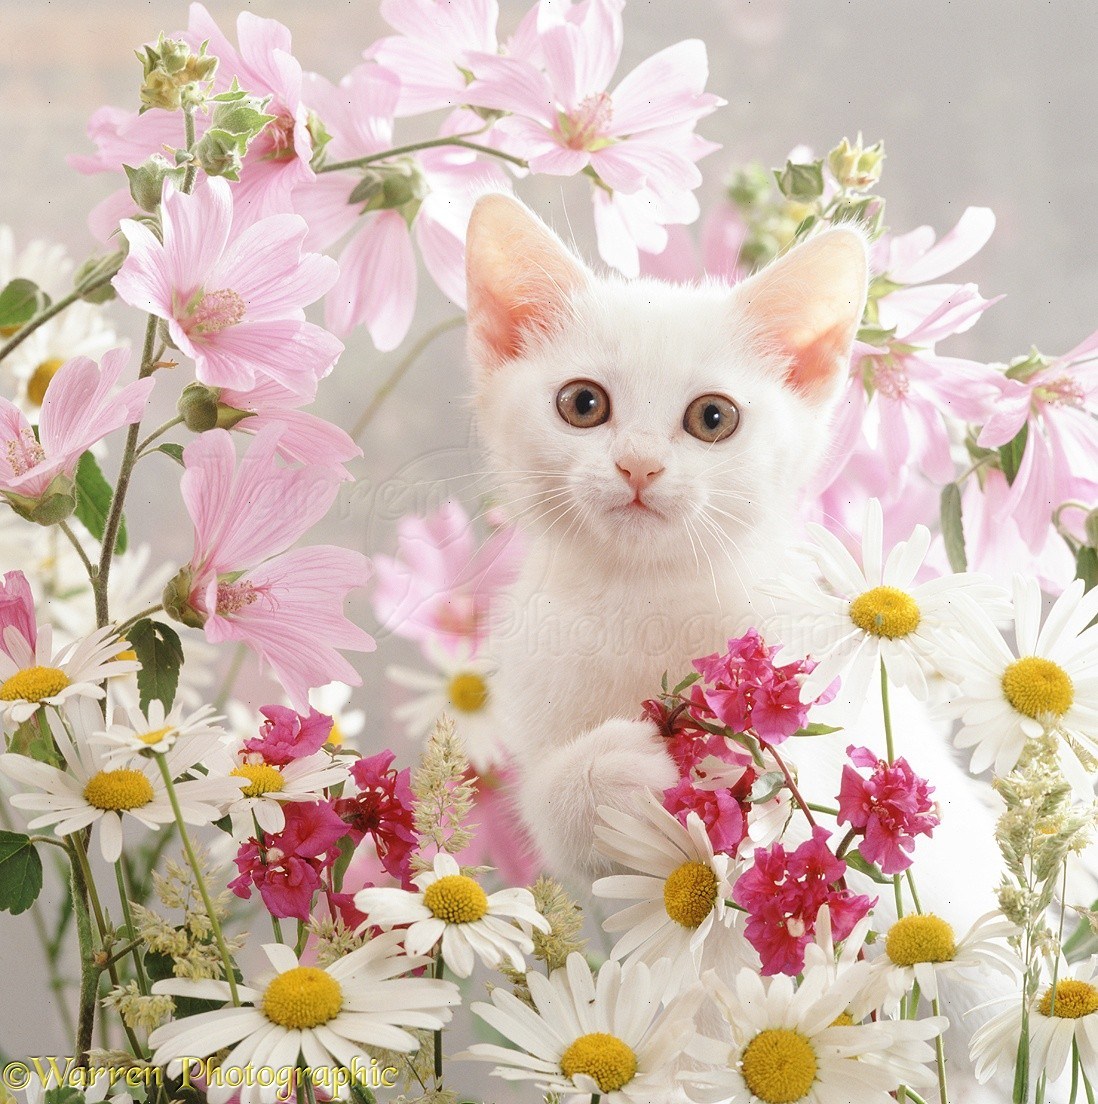 White kitten and pink flowers photo wp08971 portrait of white thisbe kitten among ox eye daisies mallow and clarkia double mightylinksfo